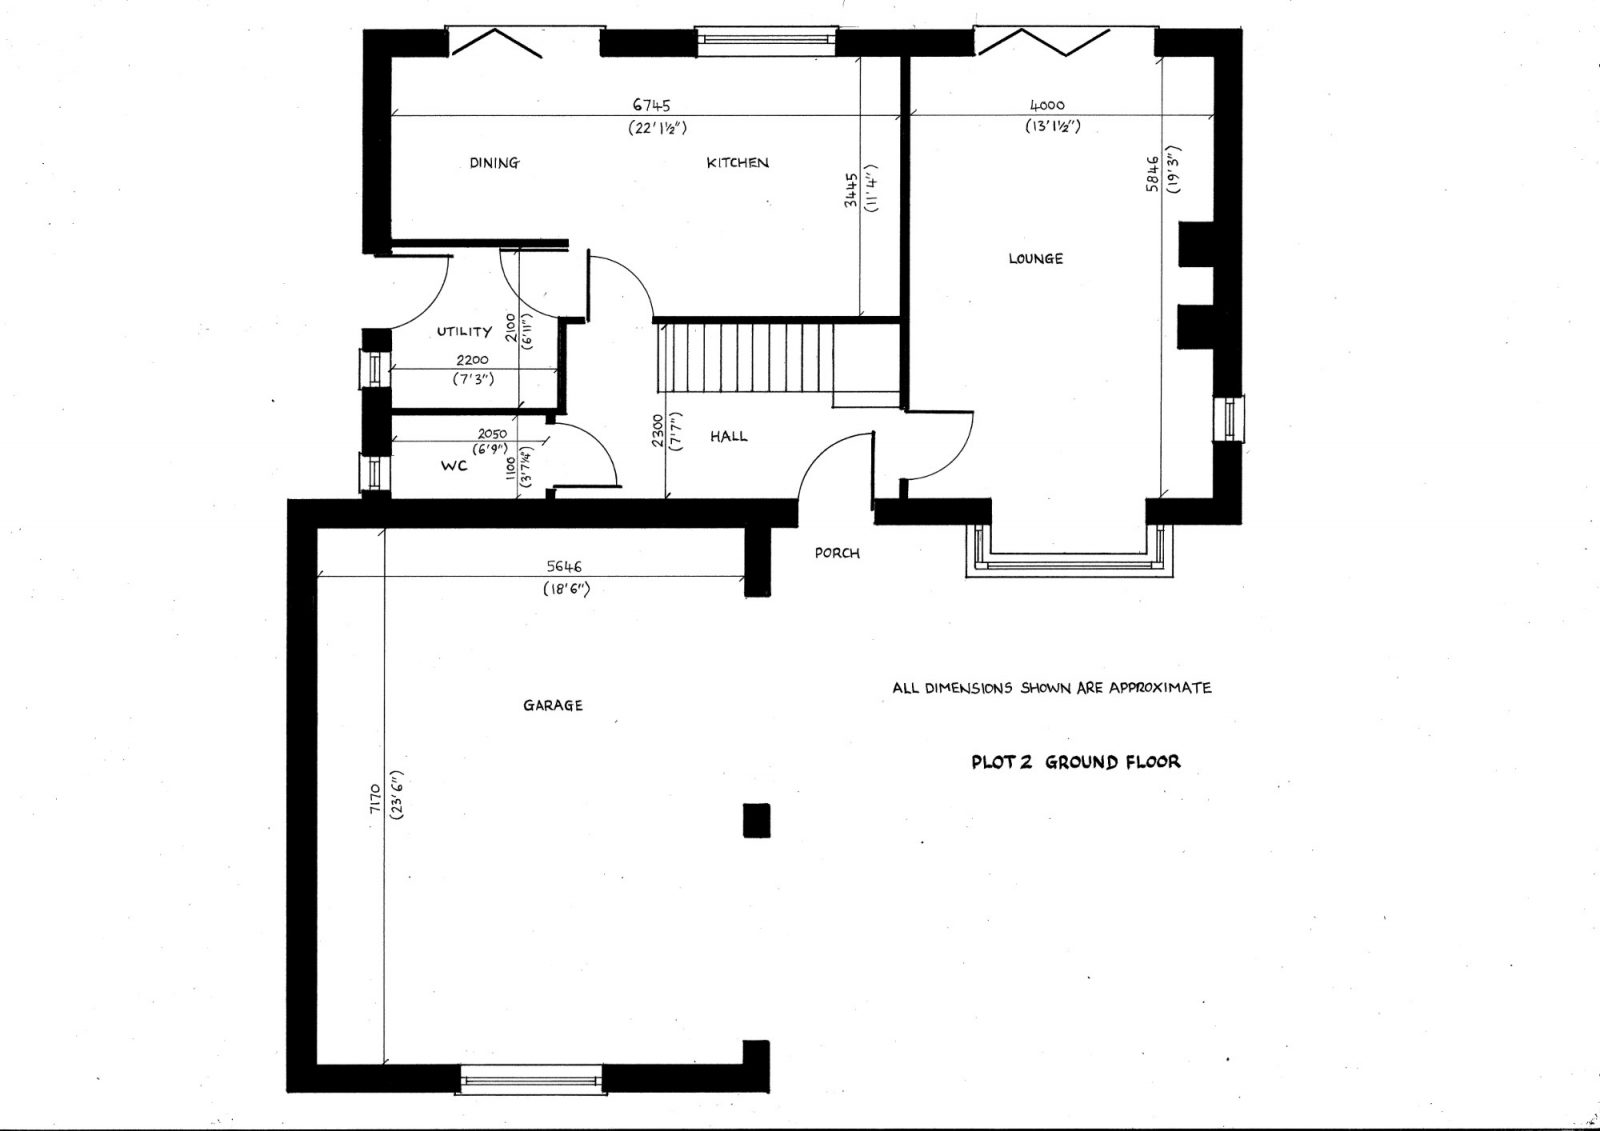 plot-2-ground-floor-plan-reduced